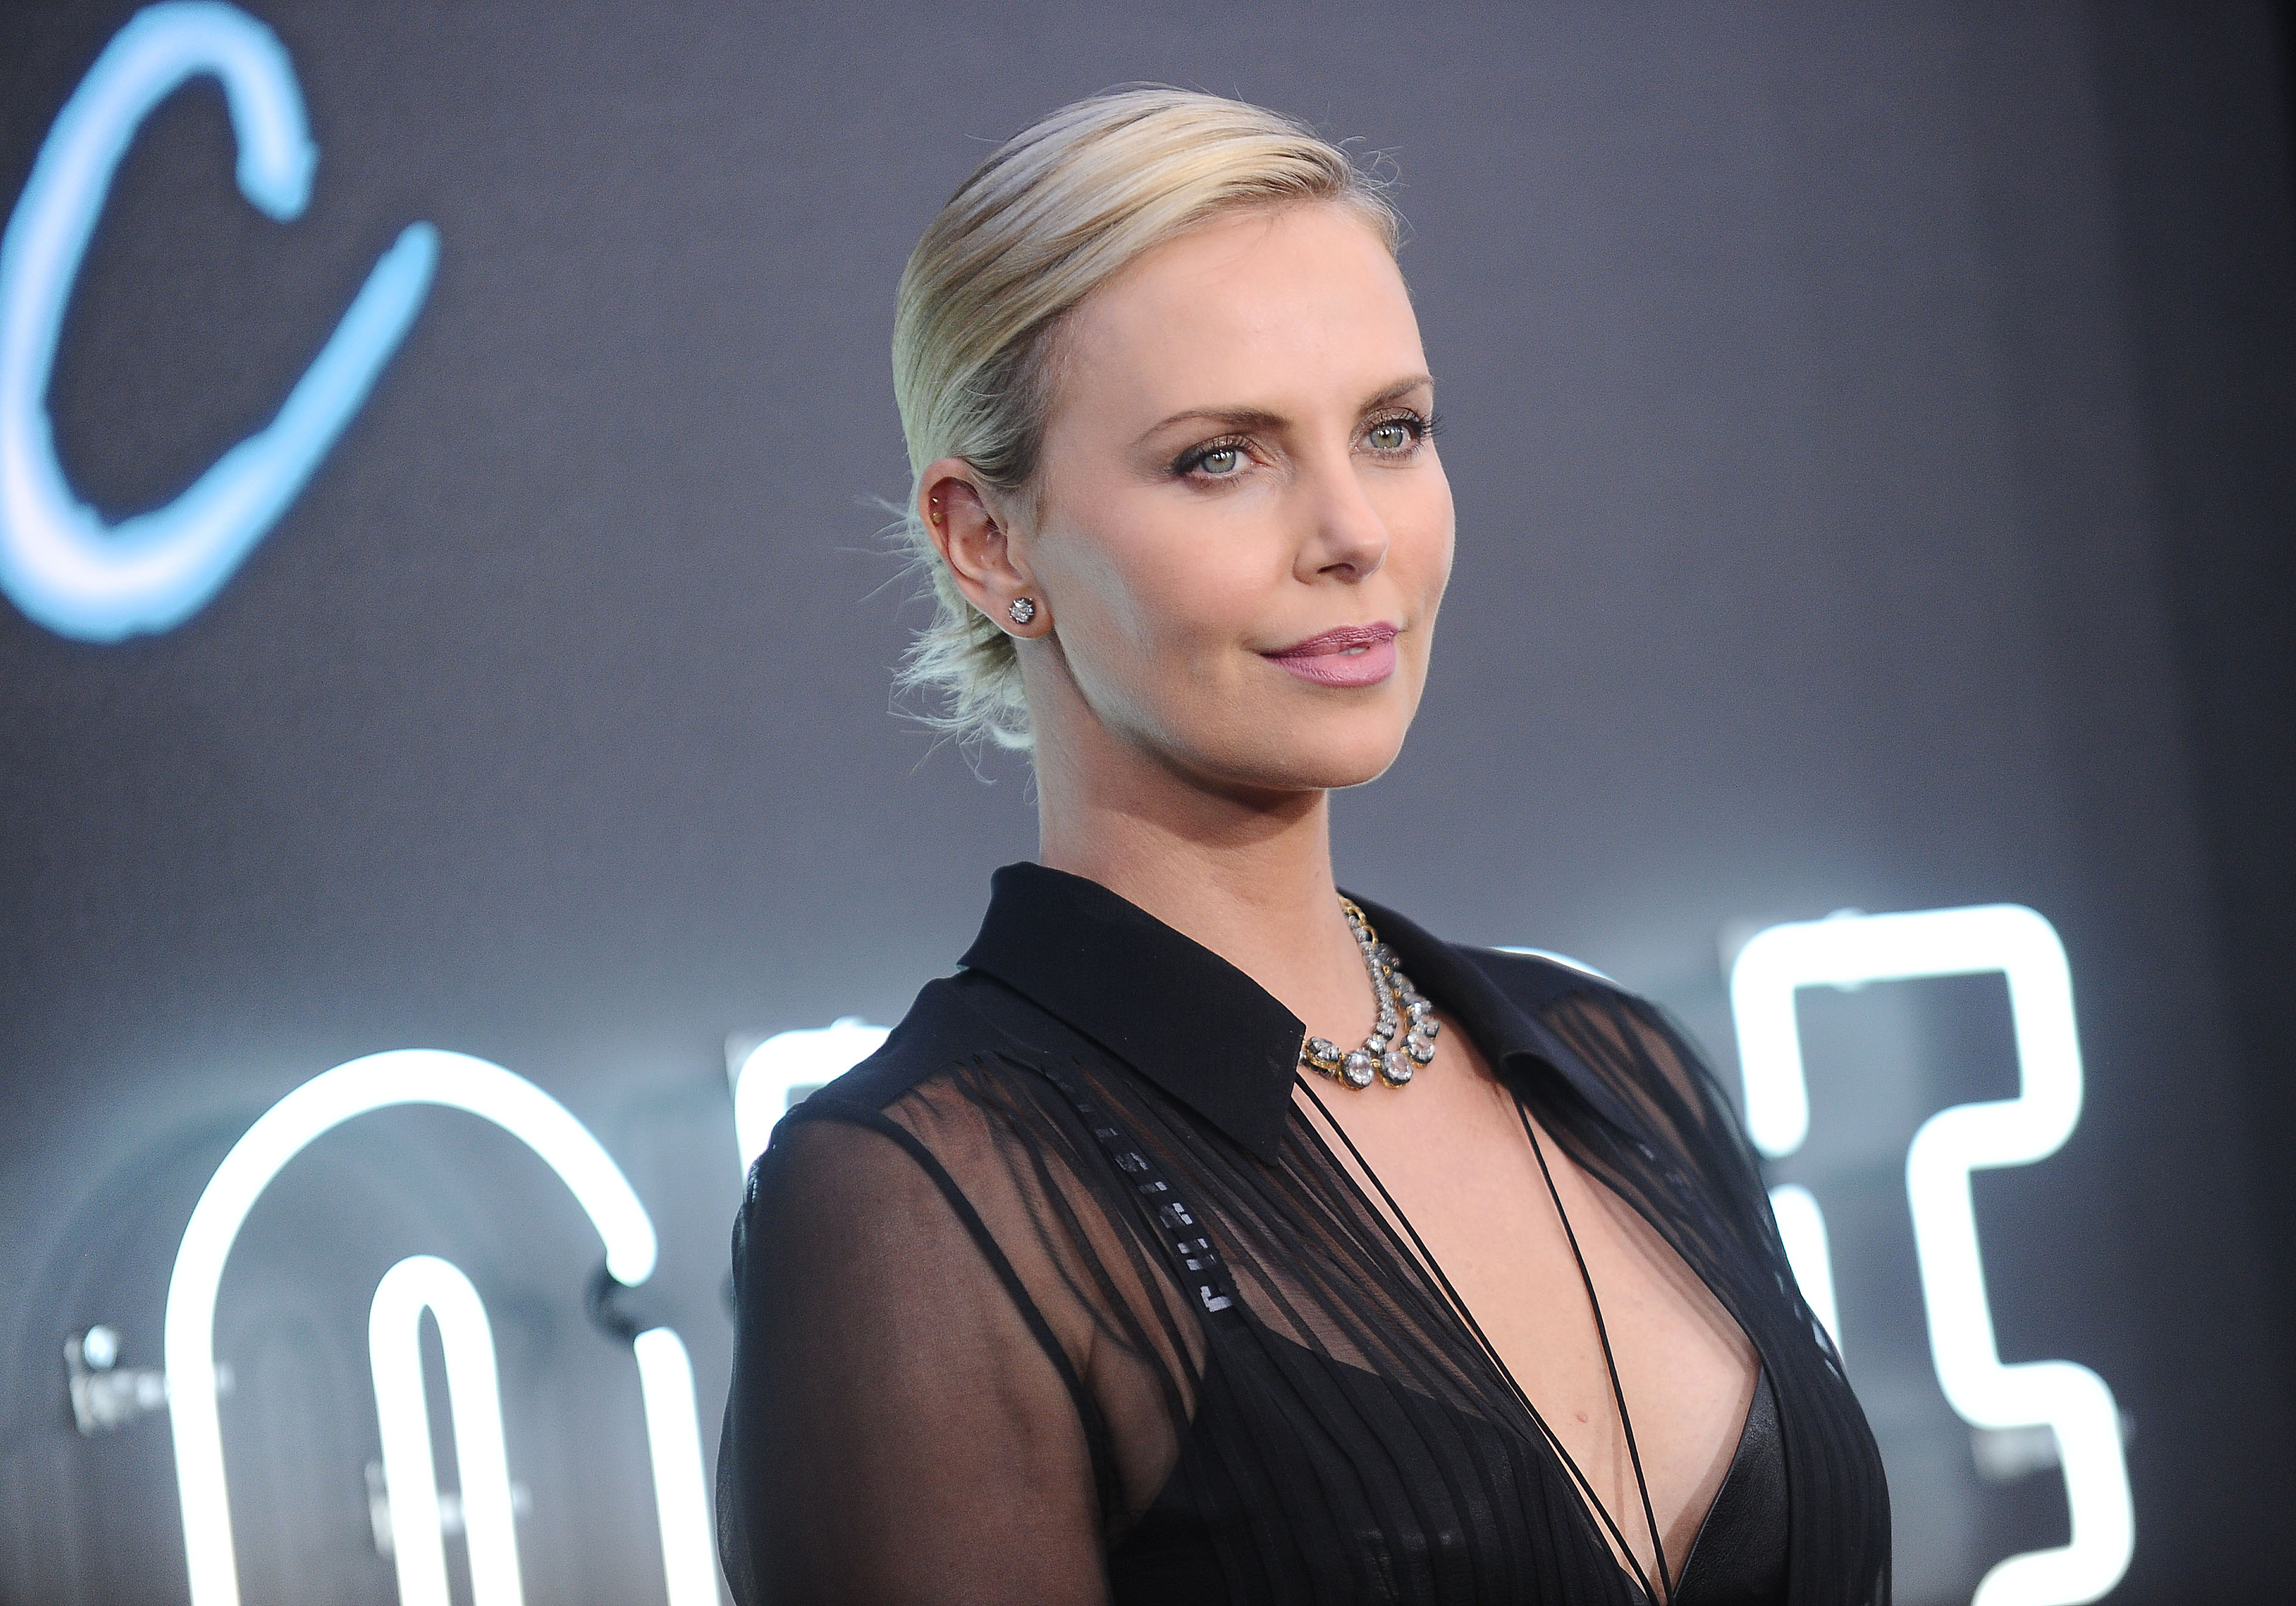 Charlize Theron Wore A Sheer Dress Over A Black Bra At The